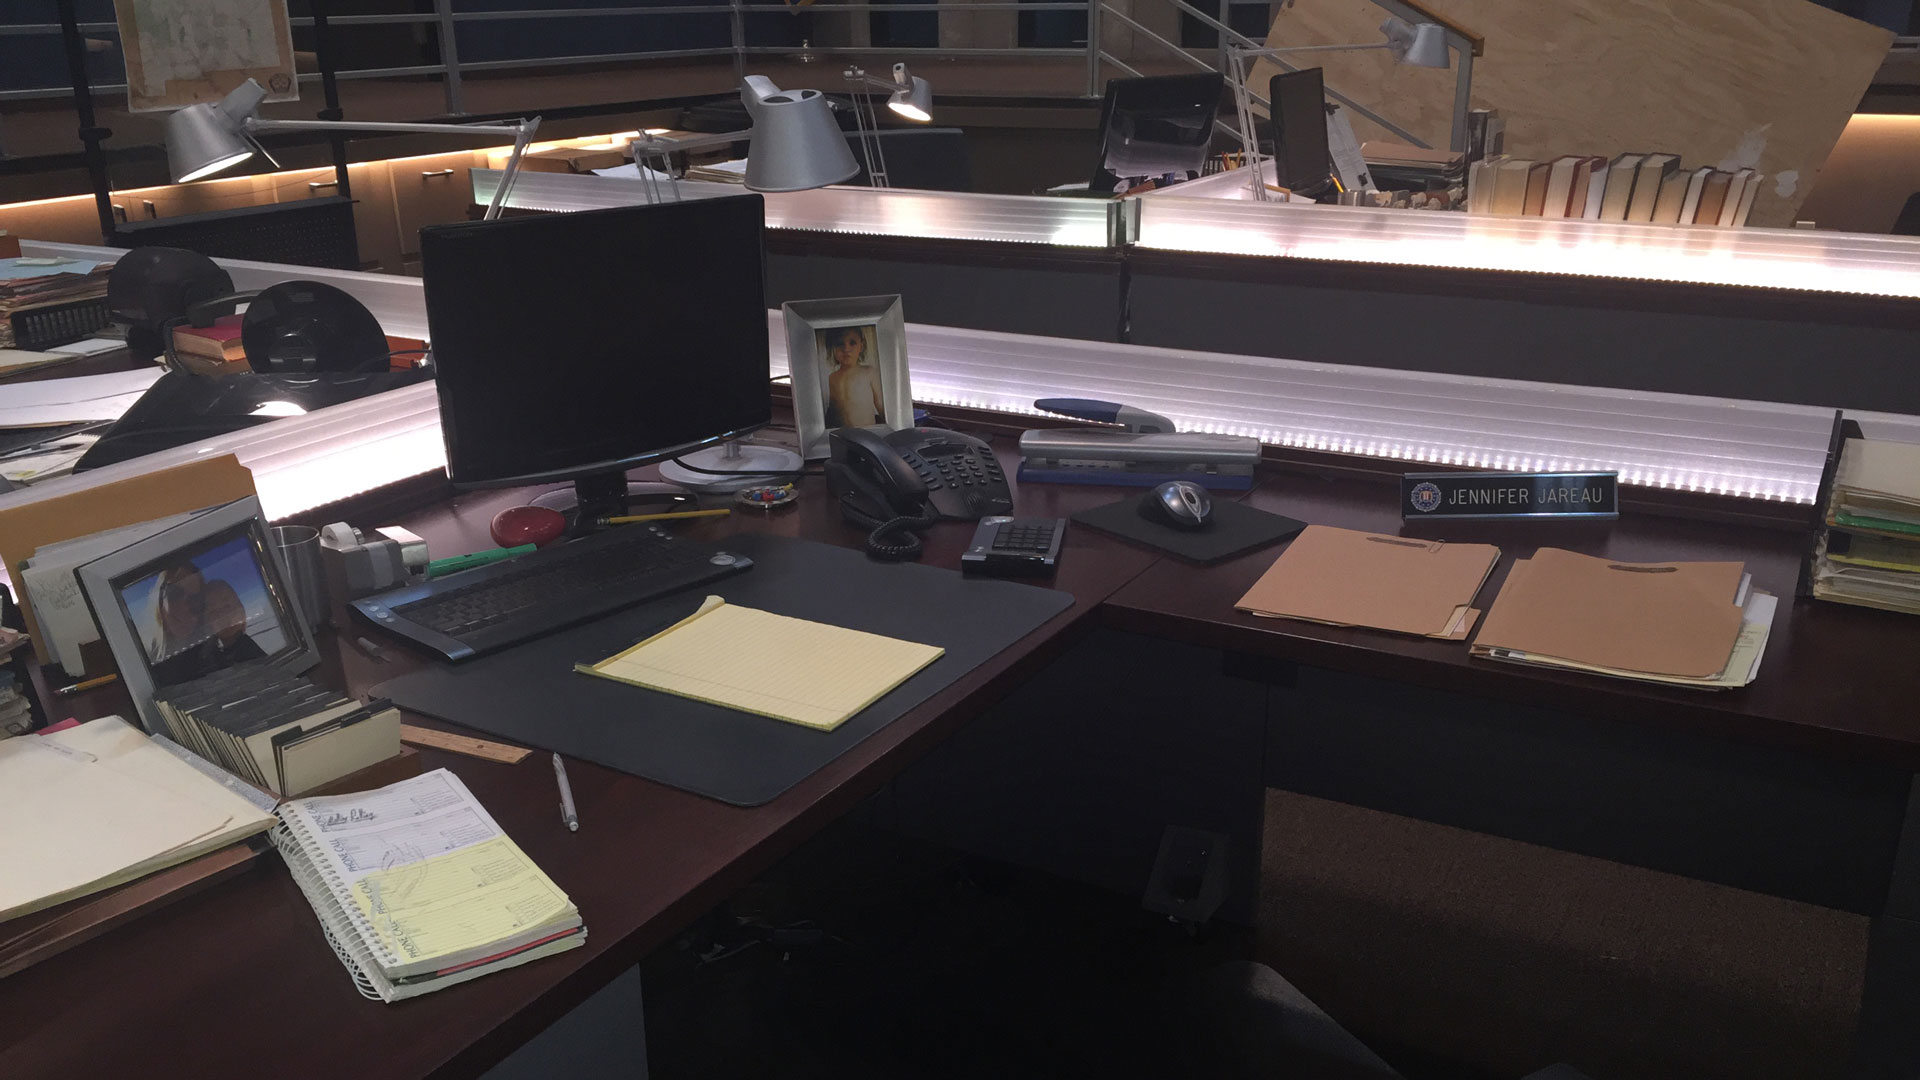 Guess the desk!